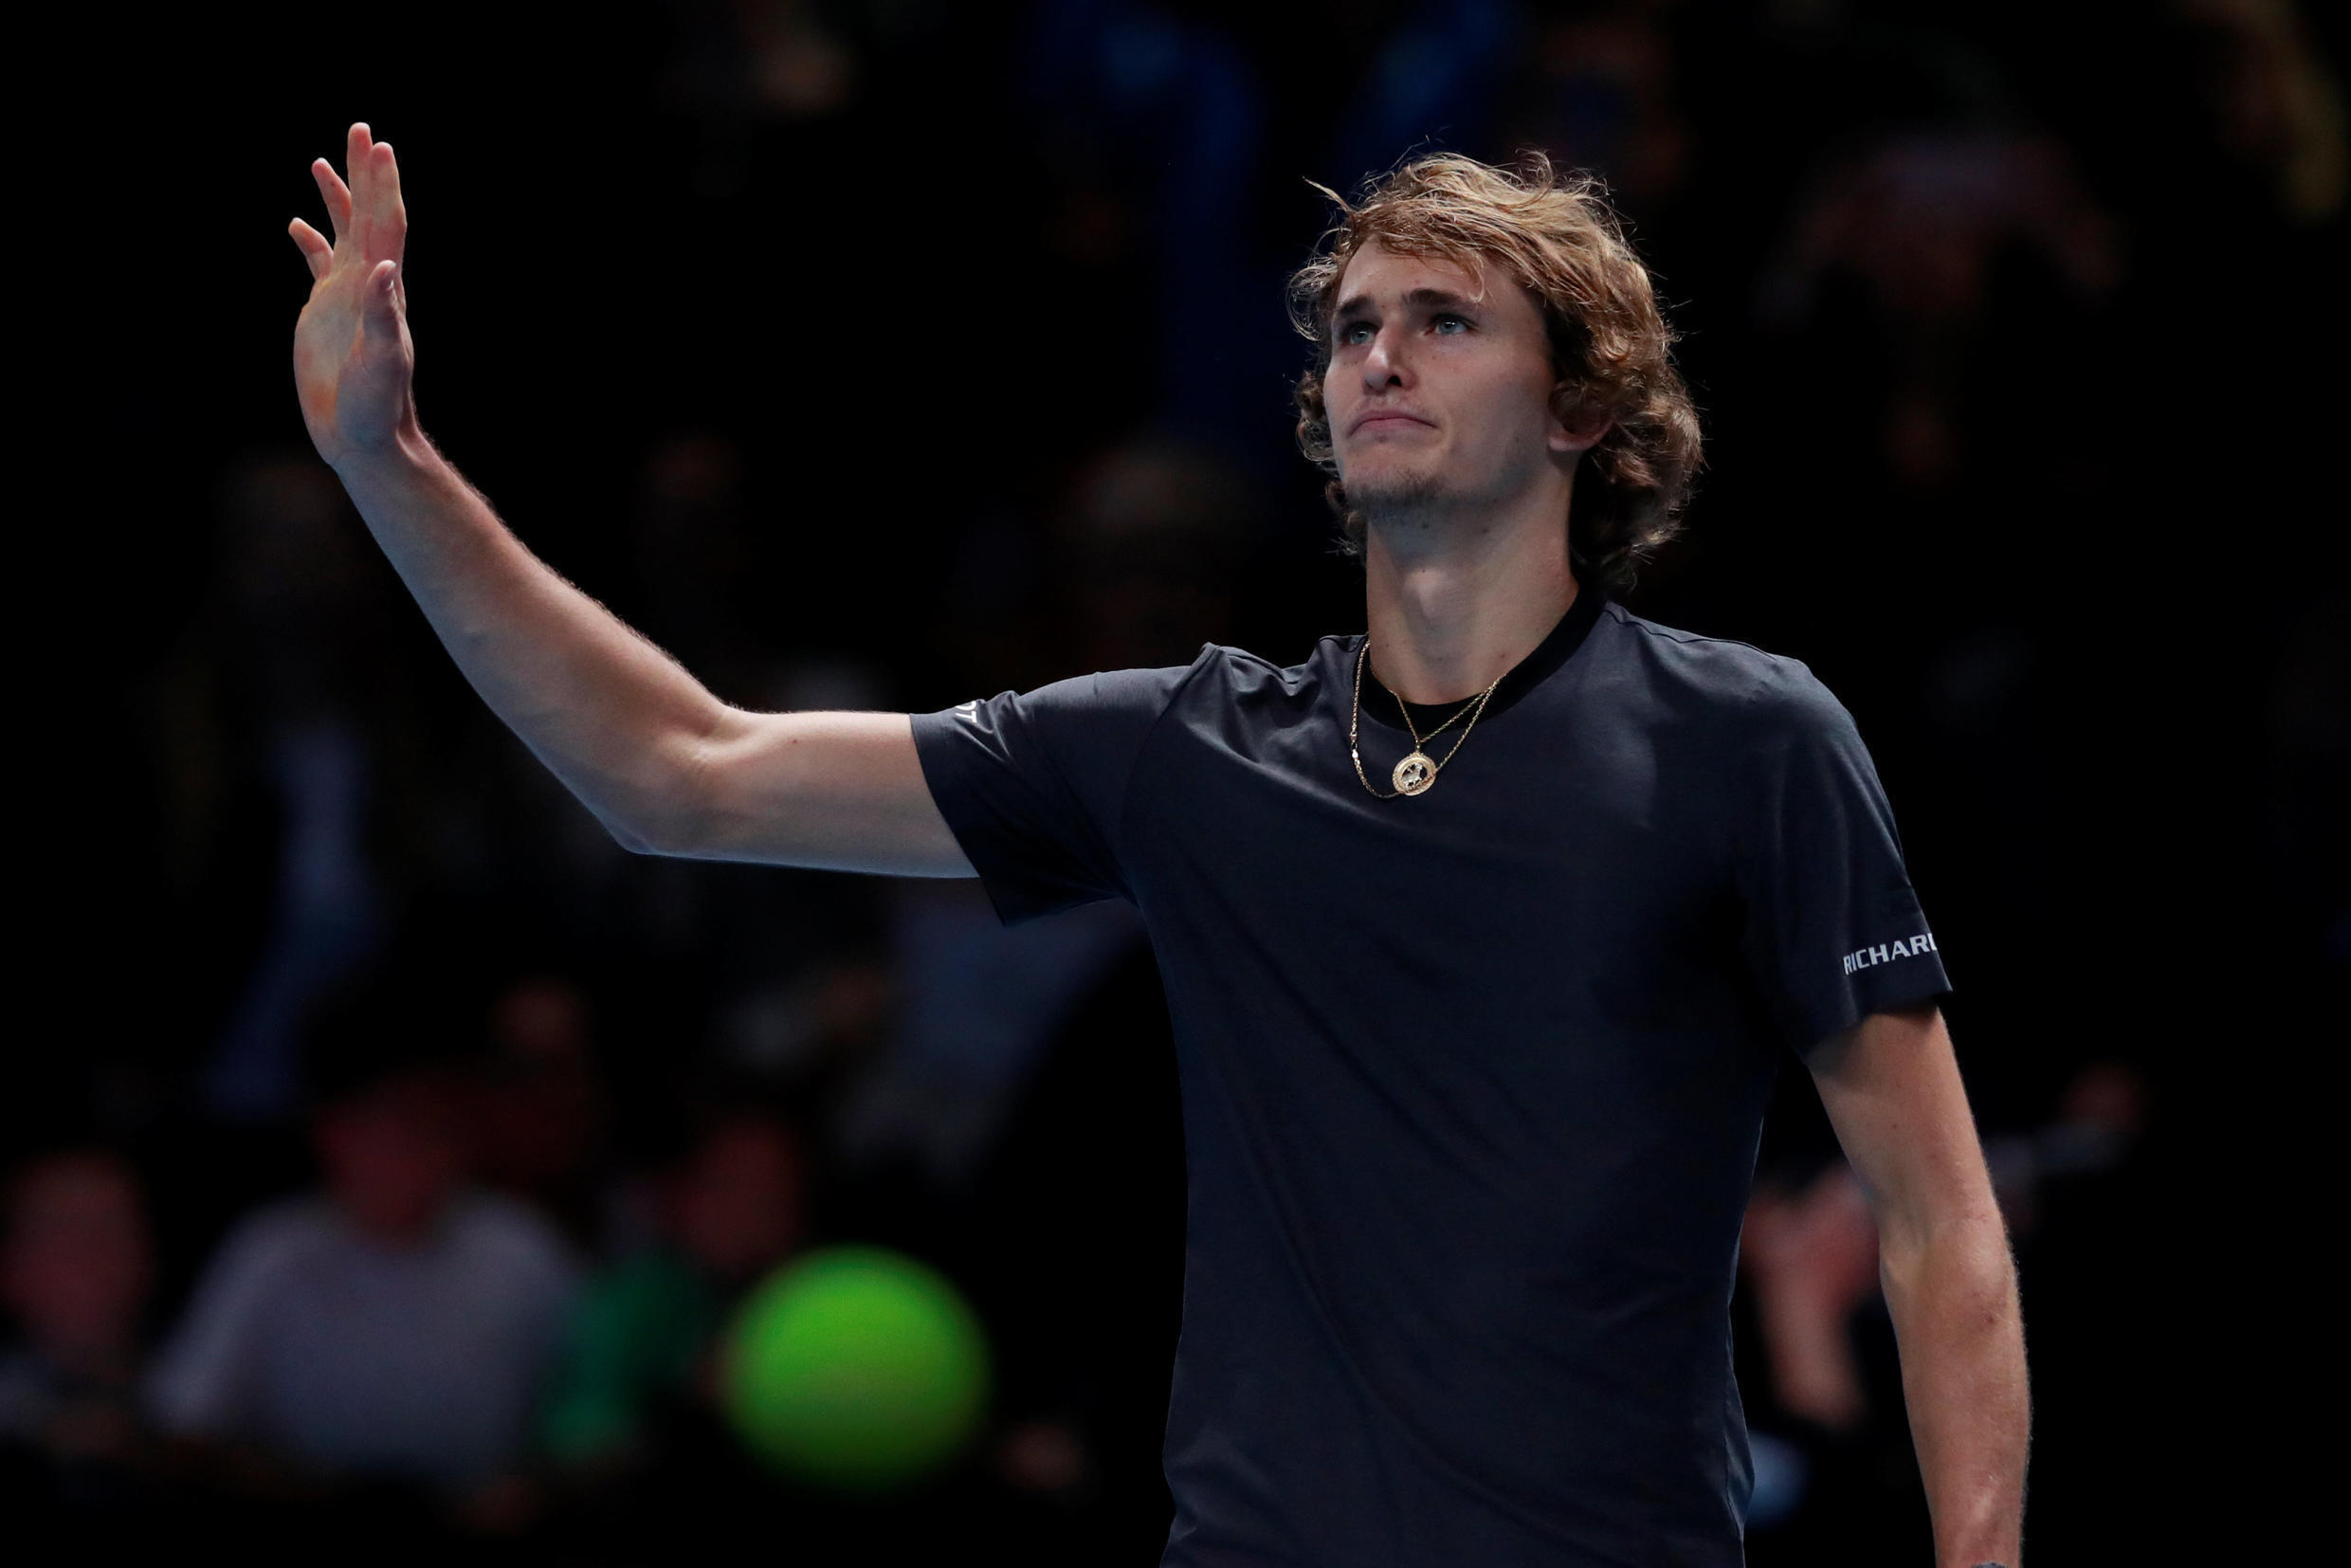 Alex Zverev is the first German to reach the final at the season ending championships for 22 years.